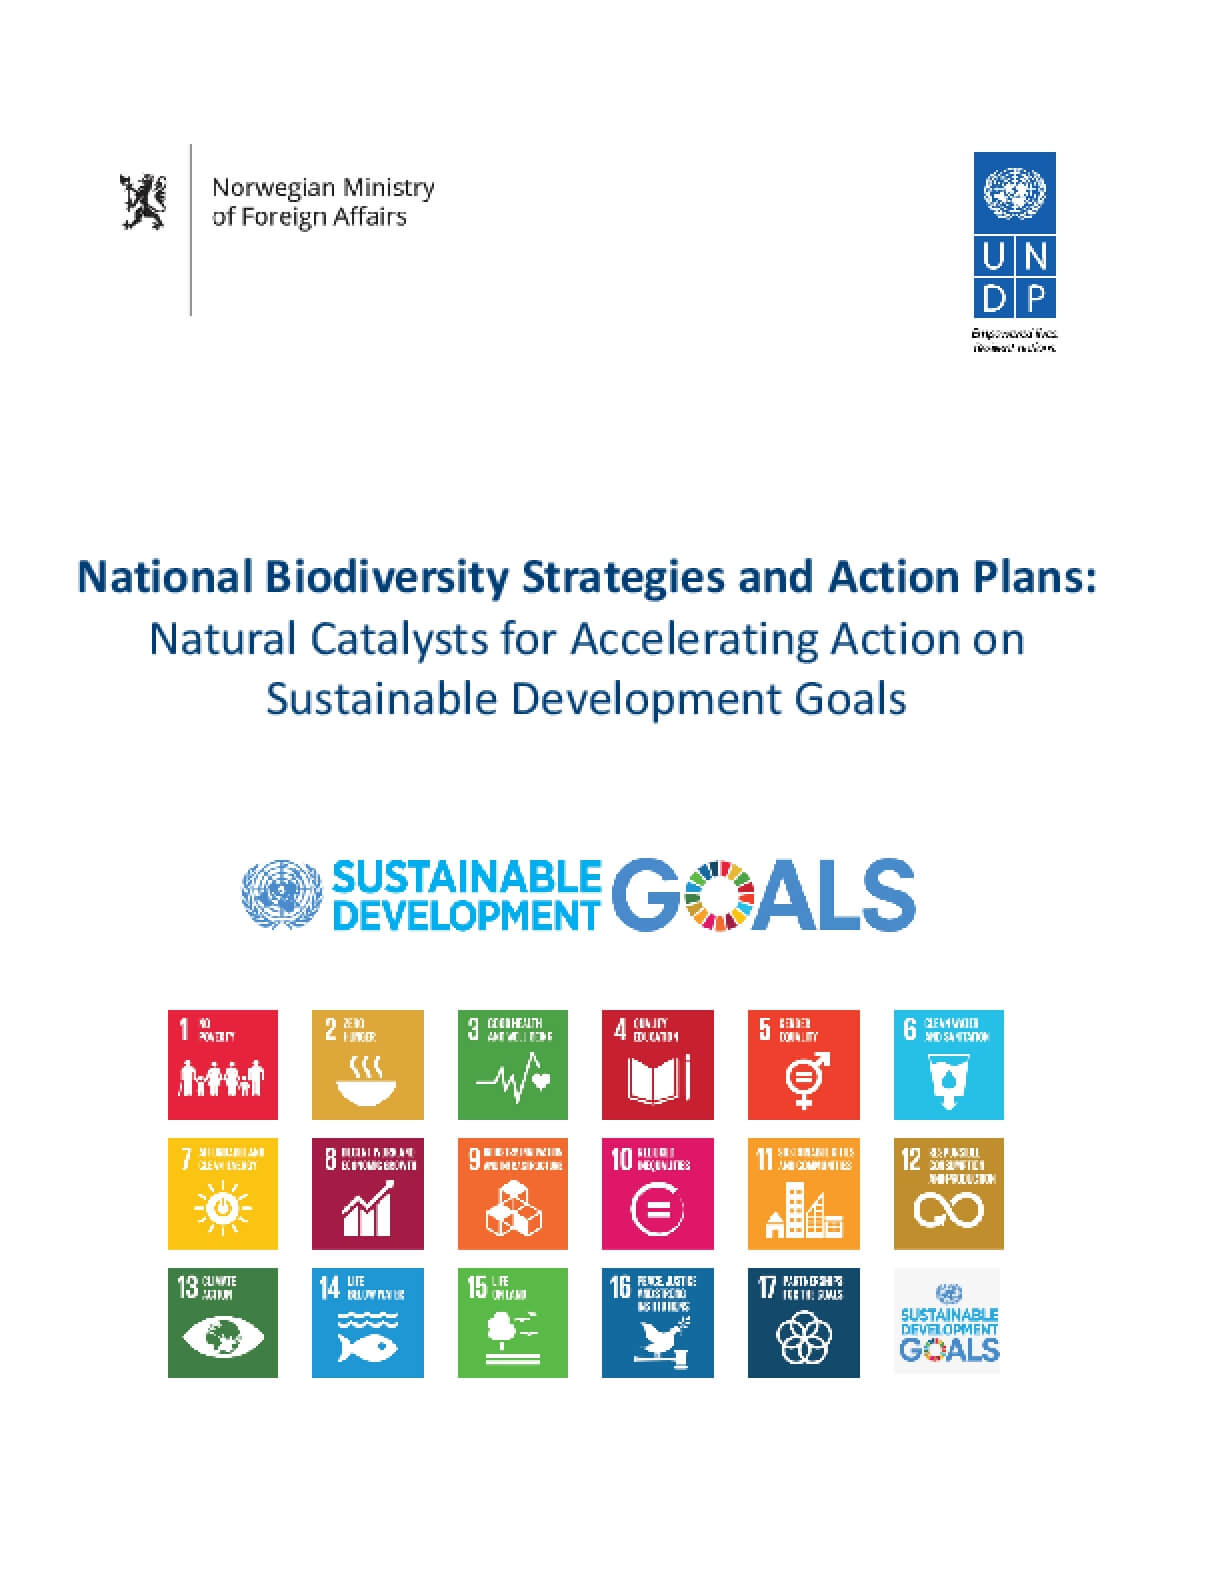 National Biodiversity Strategies and Action Plans: Natural Catalysts for Accelerating Action on Sustainable Development Goals